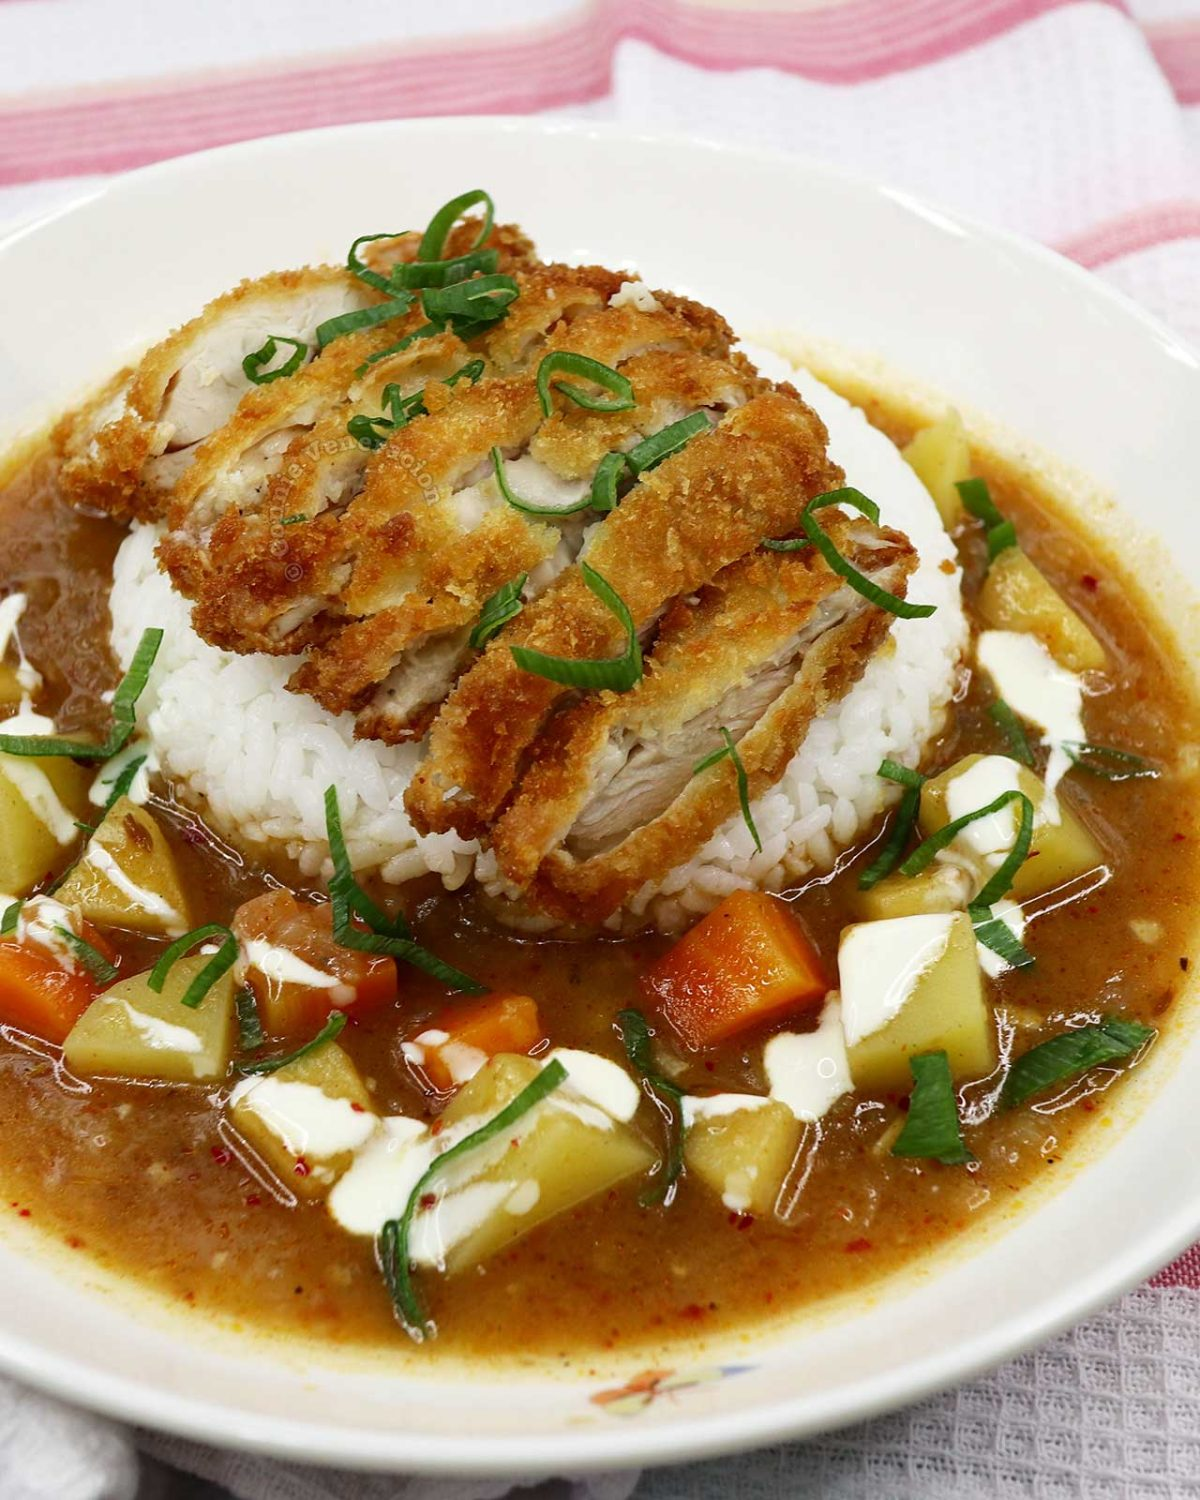 Chicken katsu on rice in a pool of Japanese curry sauce